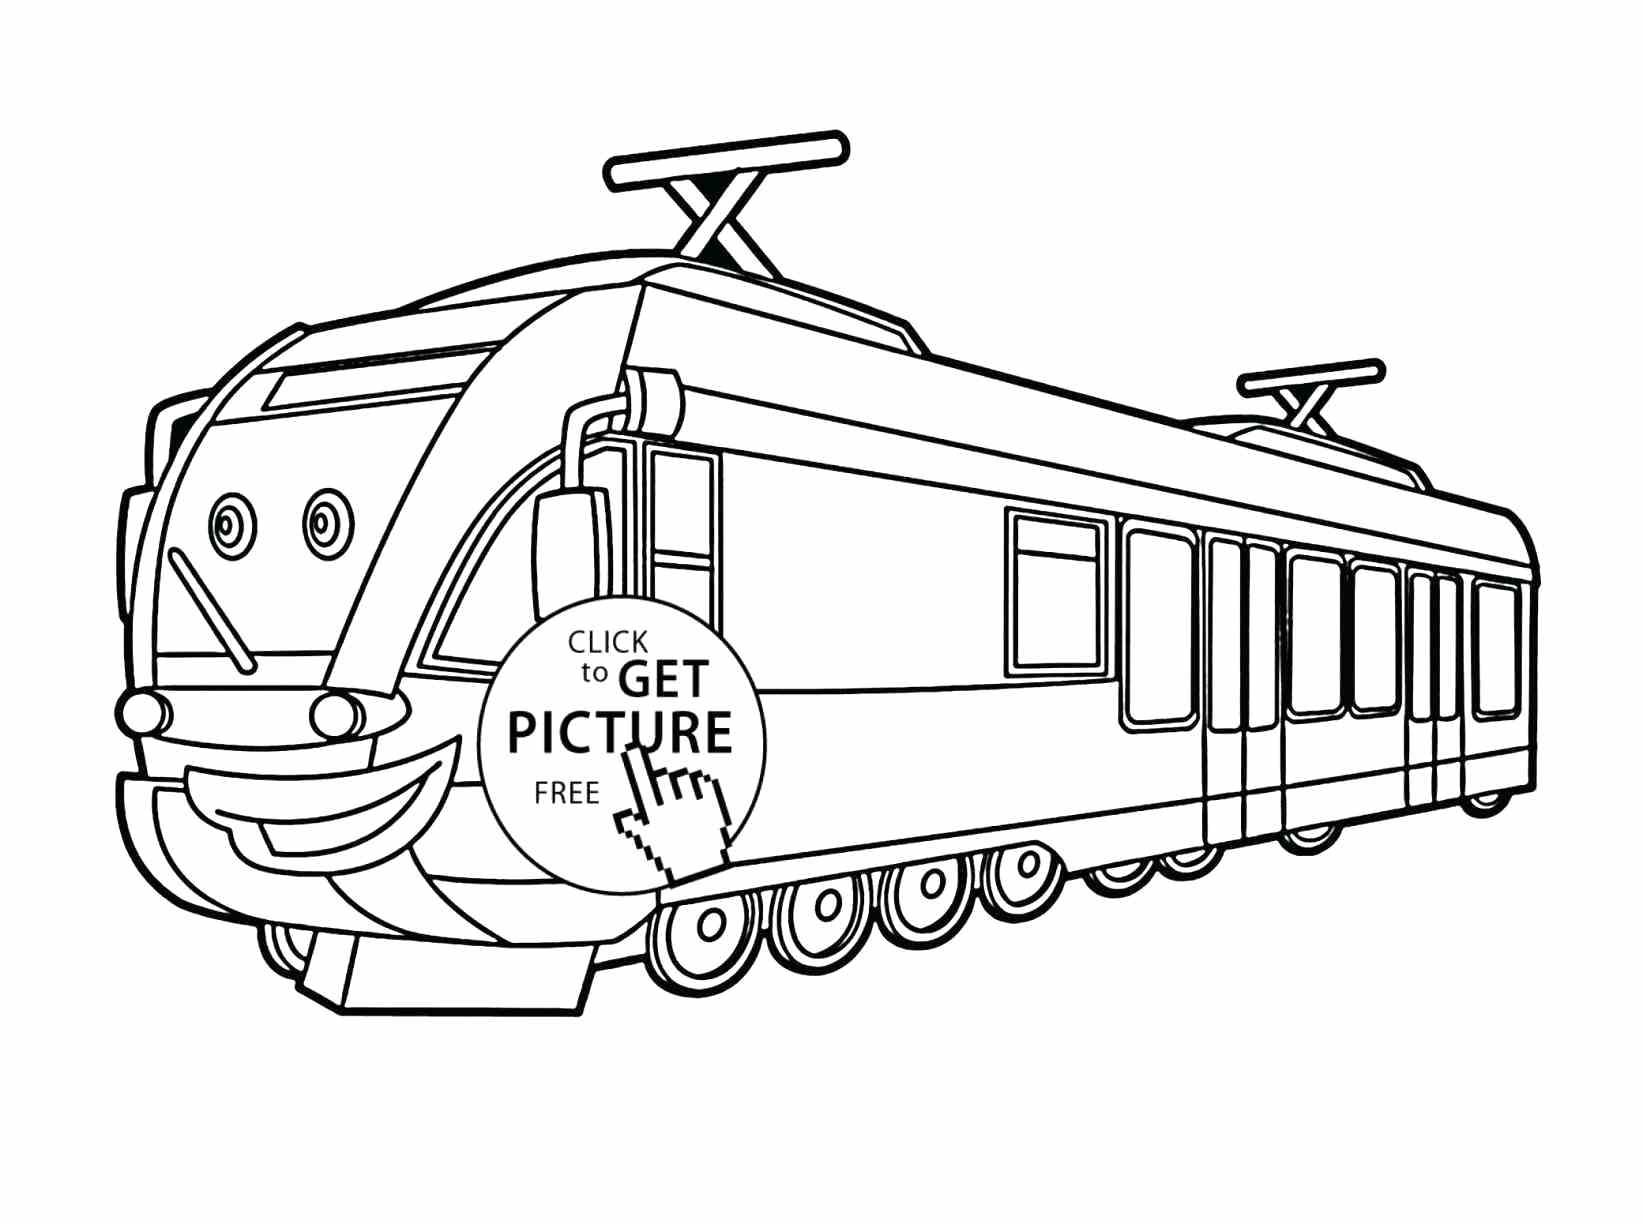 train coloring image free printable train coloring pages for kids cool2bkids coloring train image 1 1